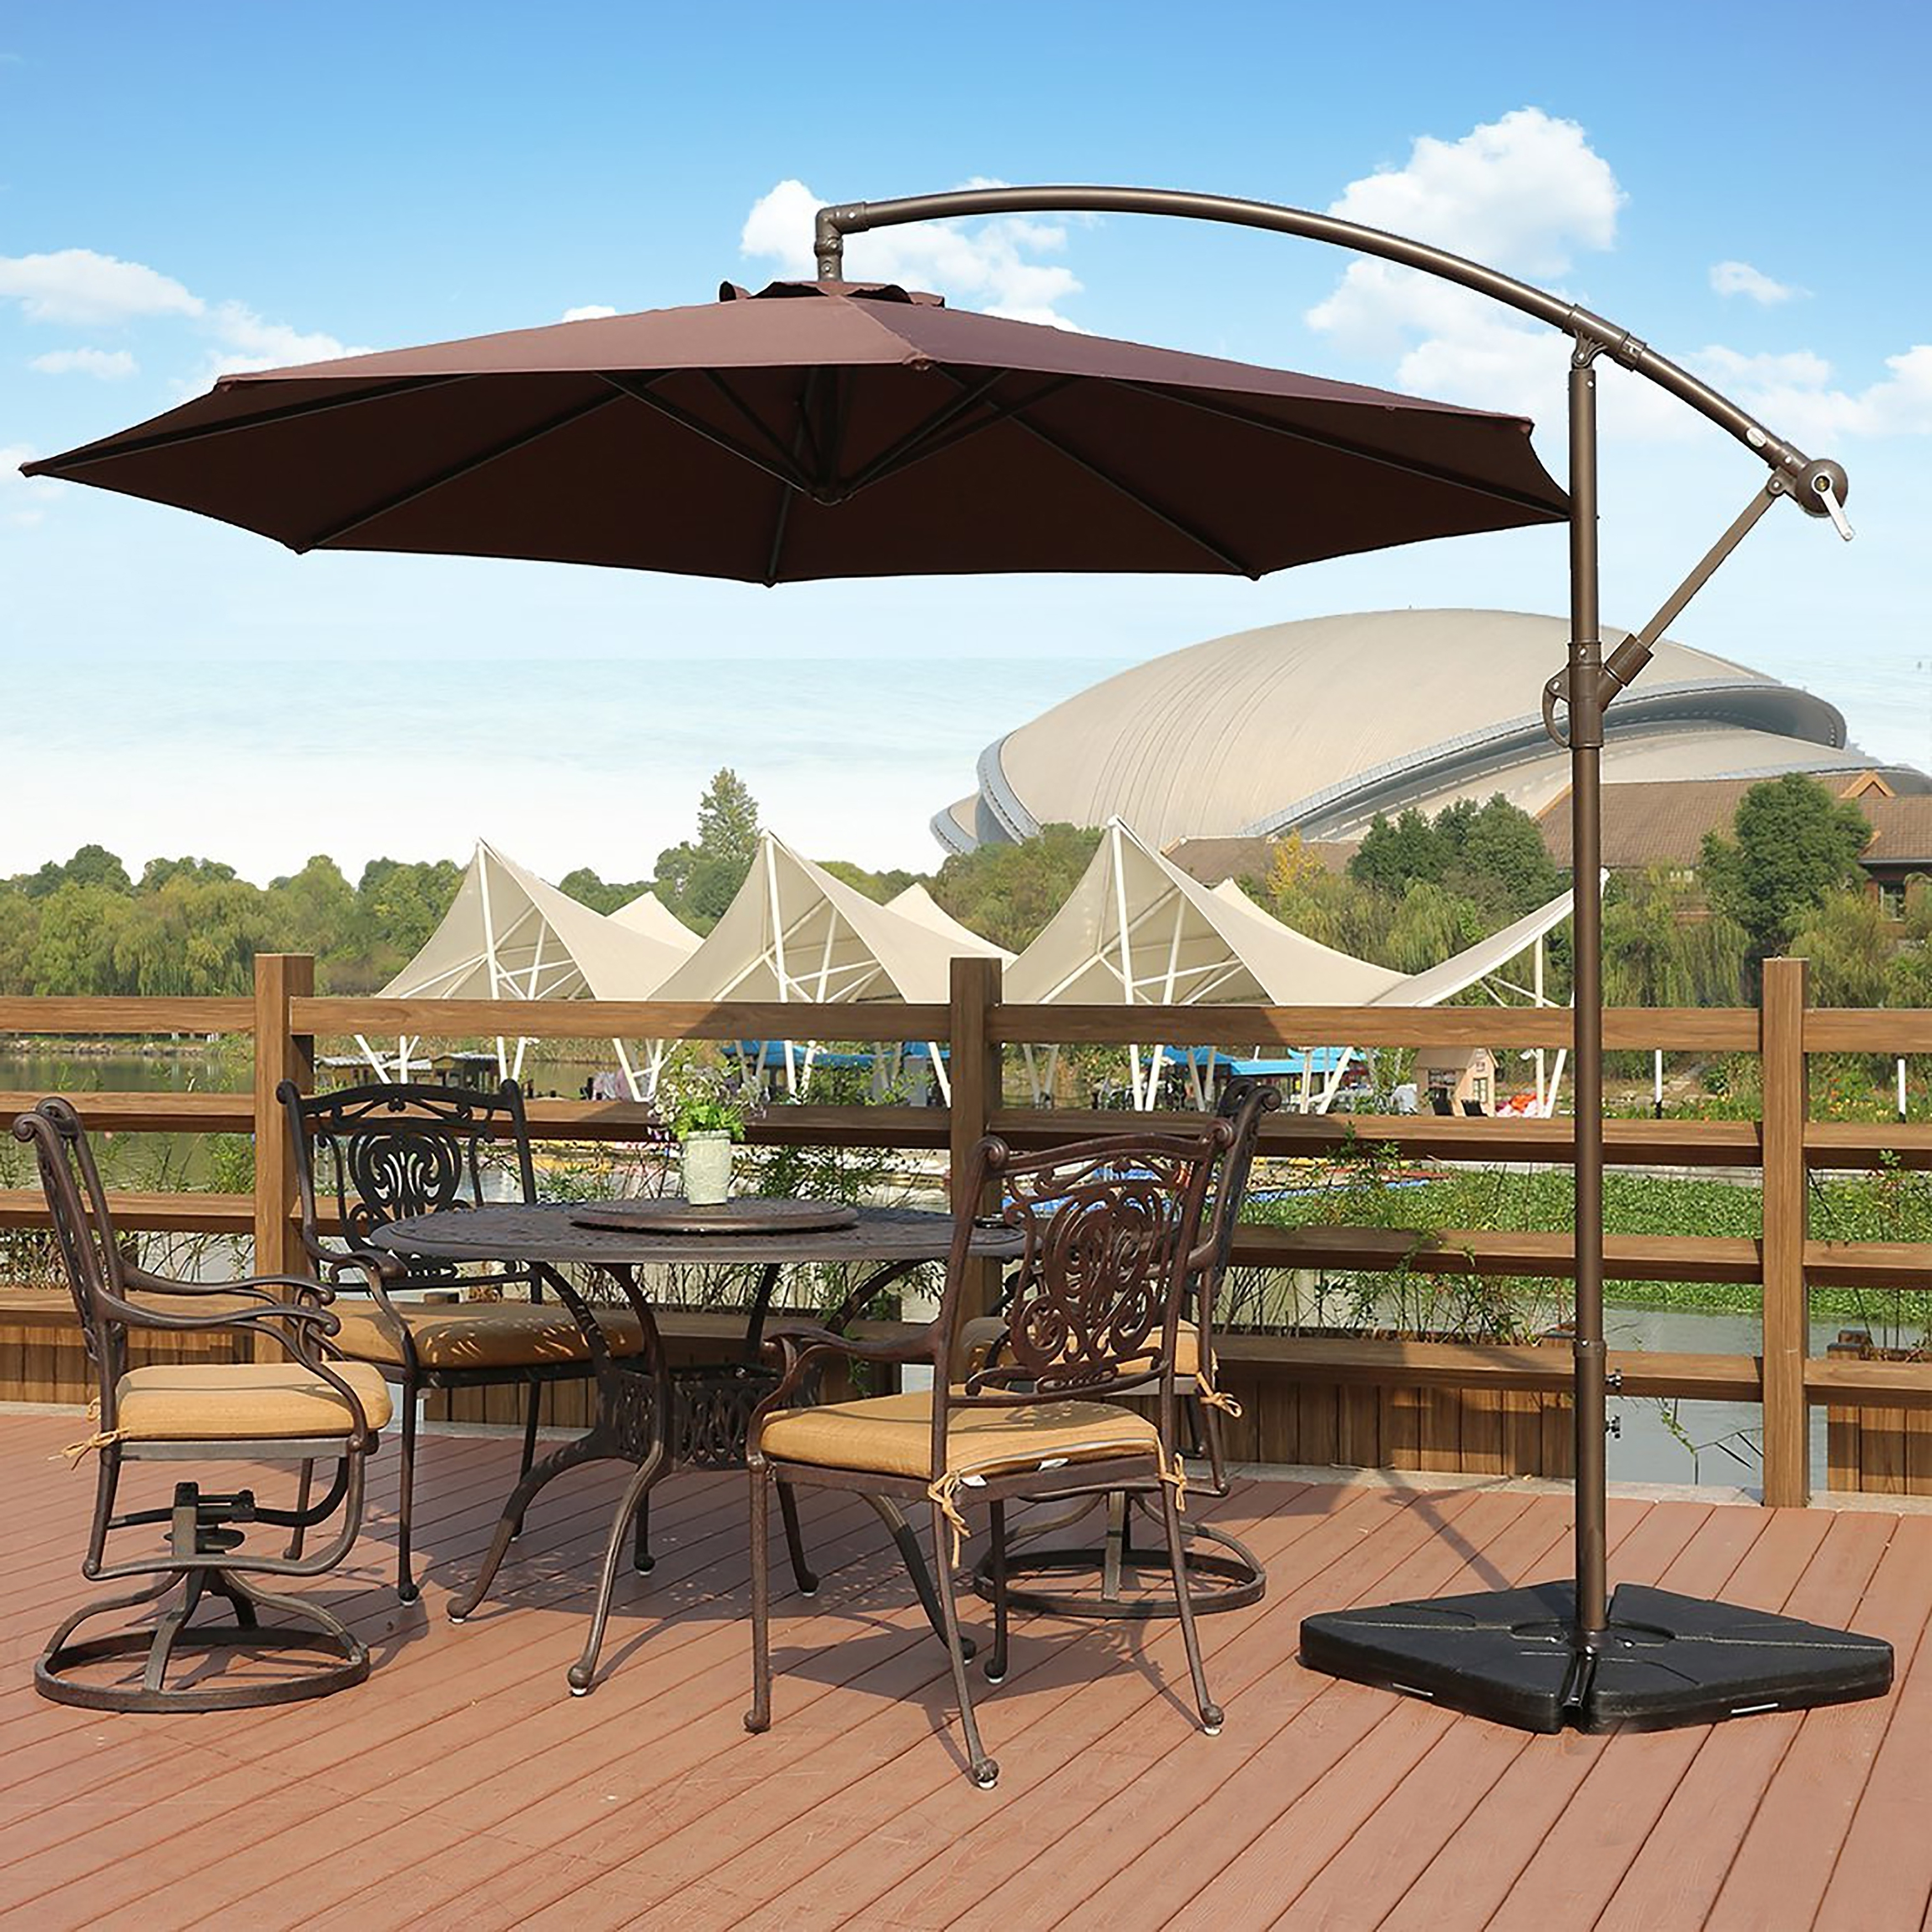 Newest Offset Cantilever Patio Umbrellas Regarding Weller 10 Ft Offset Cantilever Hanging Patio Umbrellawestin (Gallery 5 of 20)